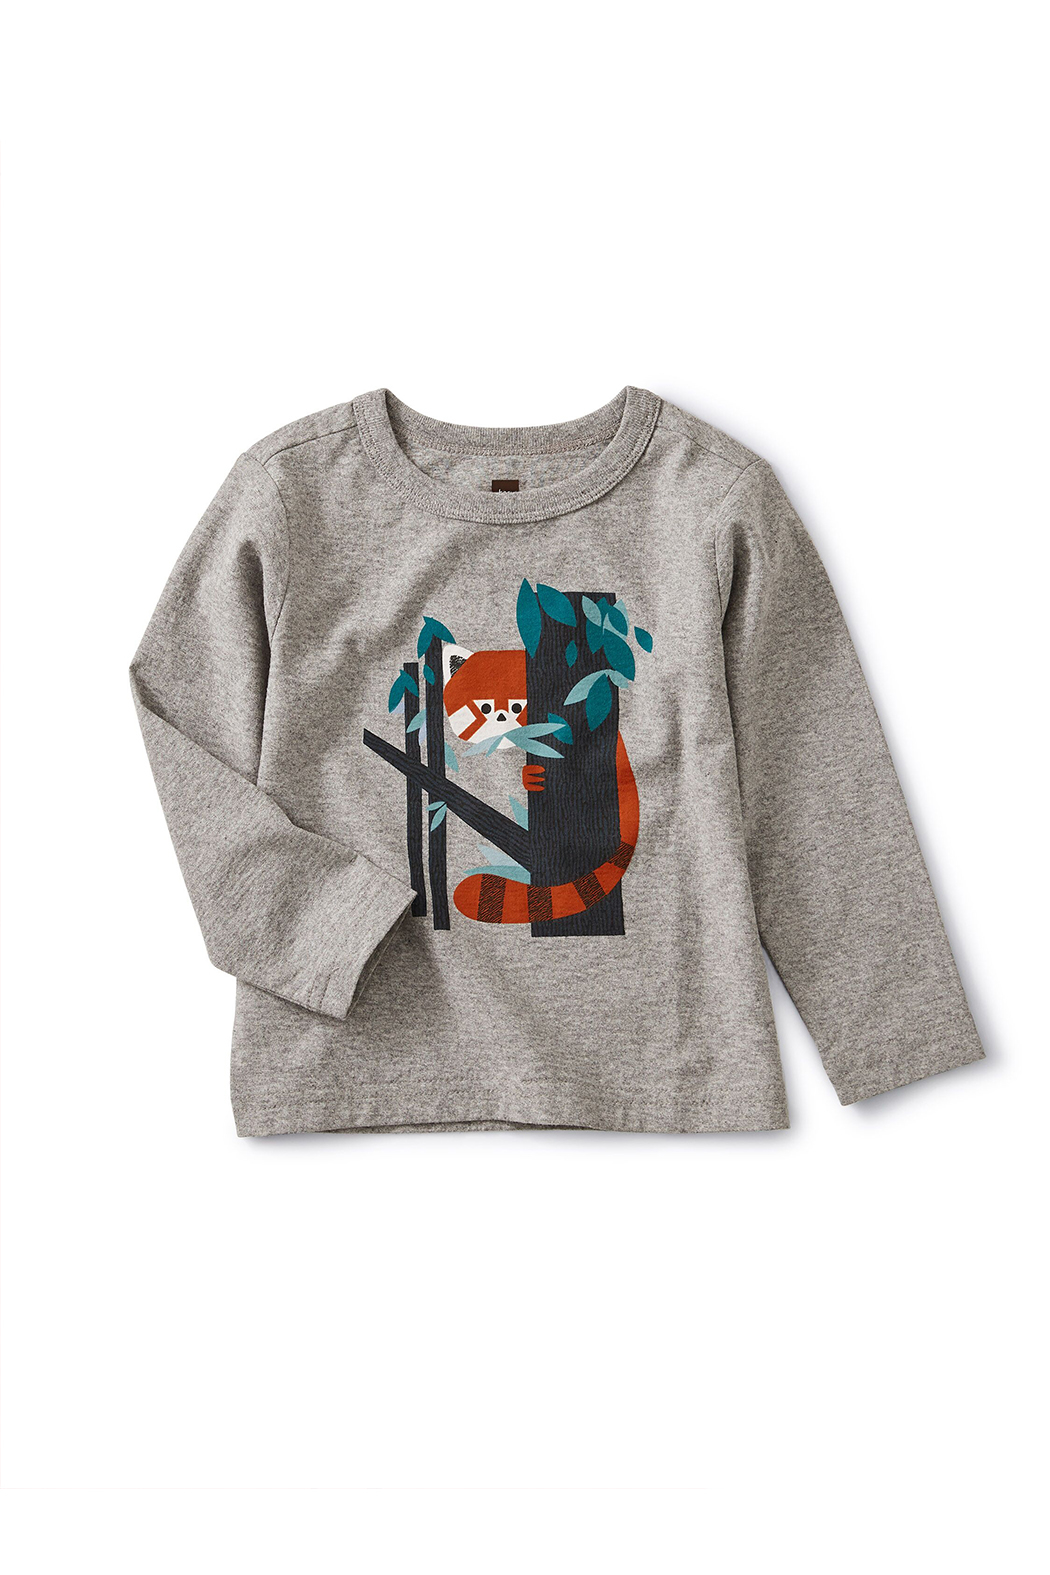 Tea Collection Red Panda Baby Graphic Tee - Main Image